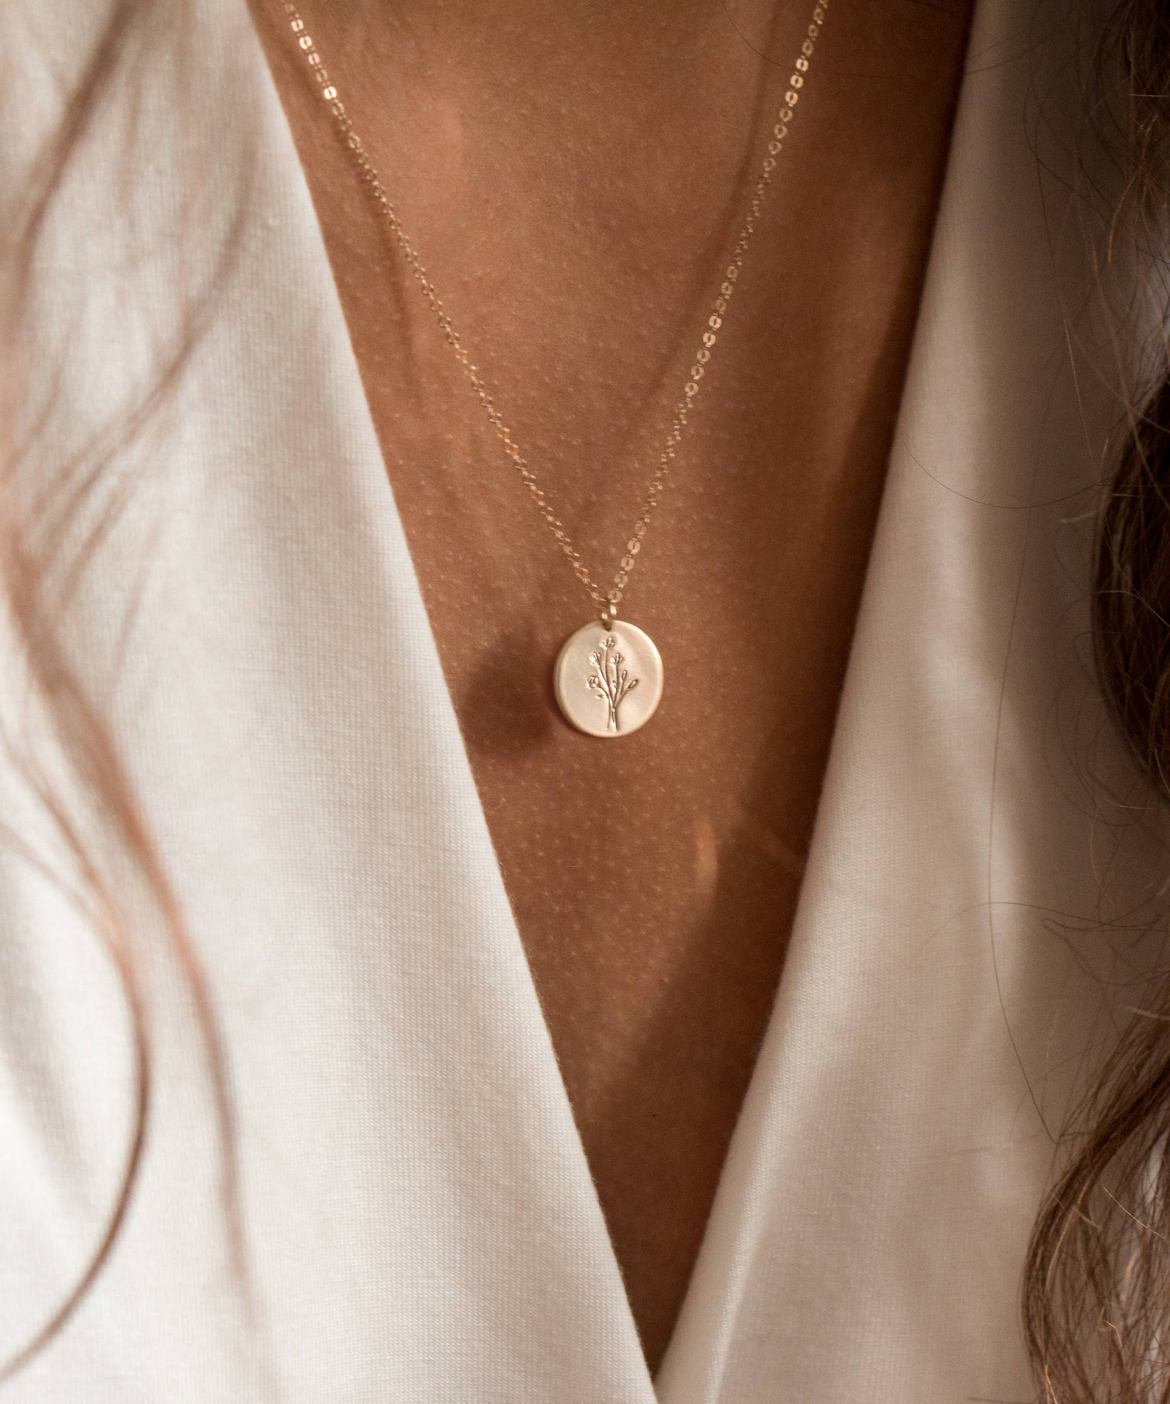 *21 Fashionable Jewelry Stores That Are Low Cost